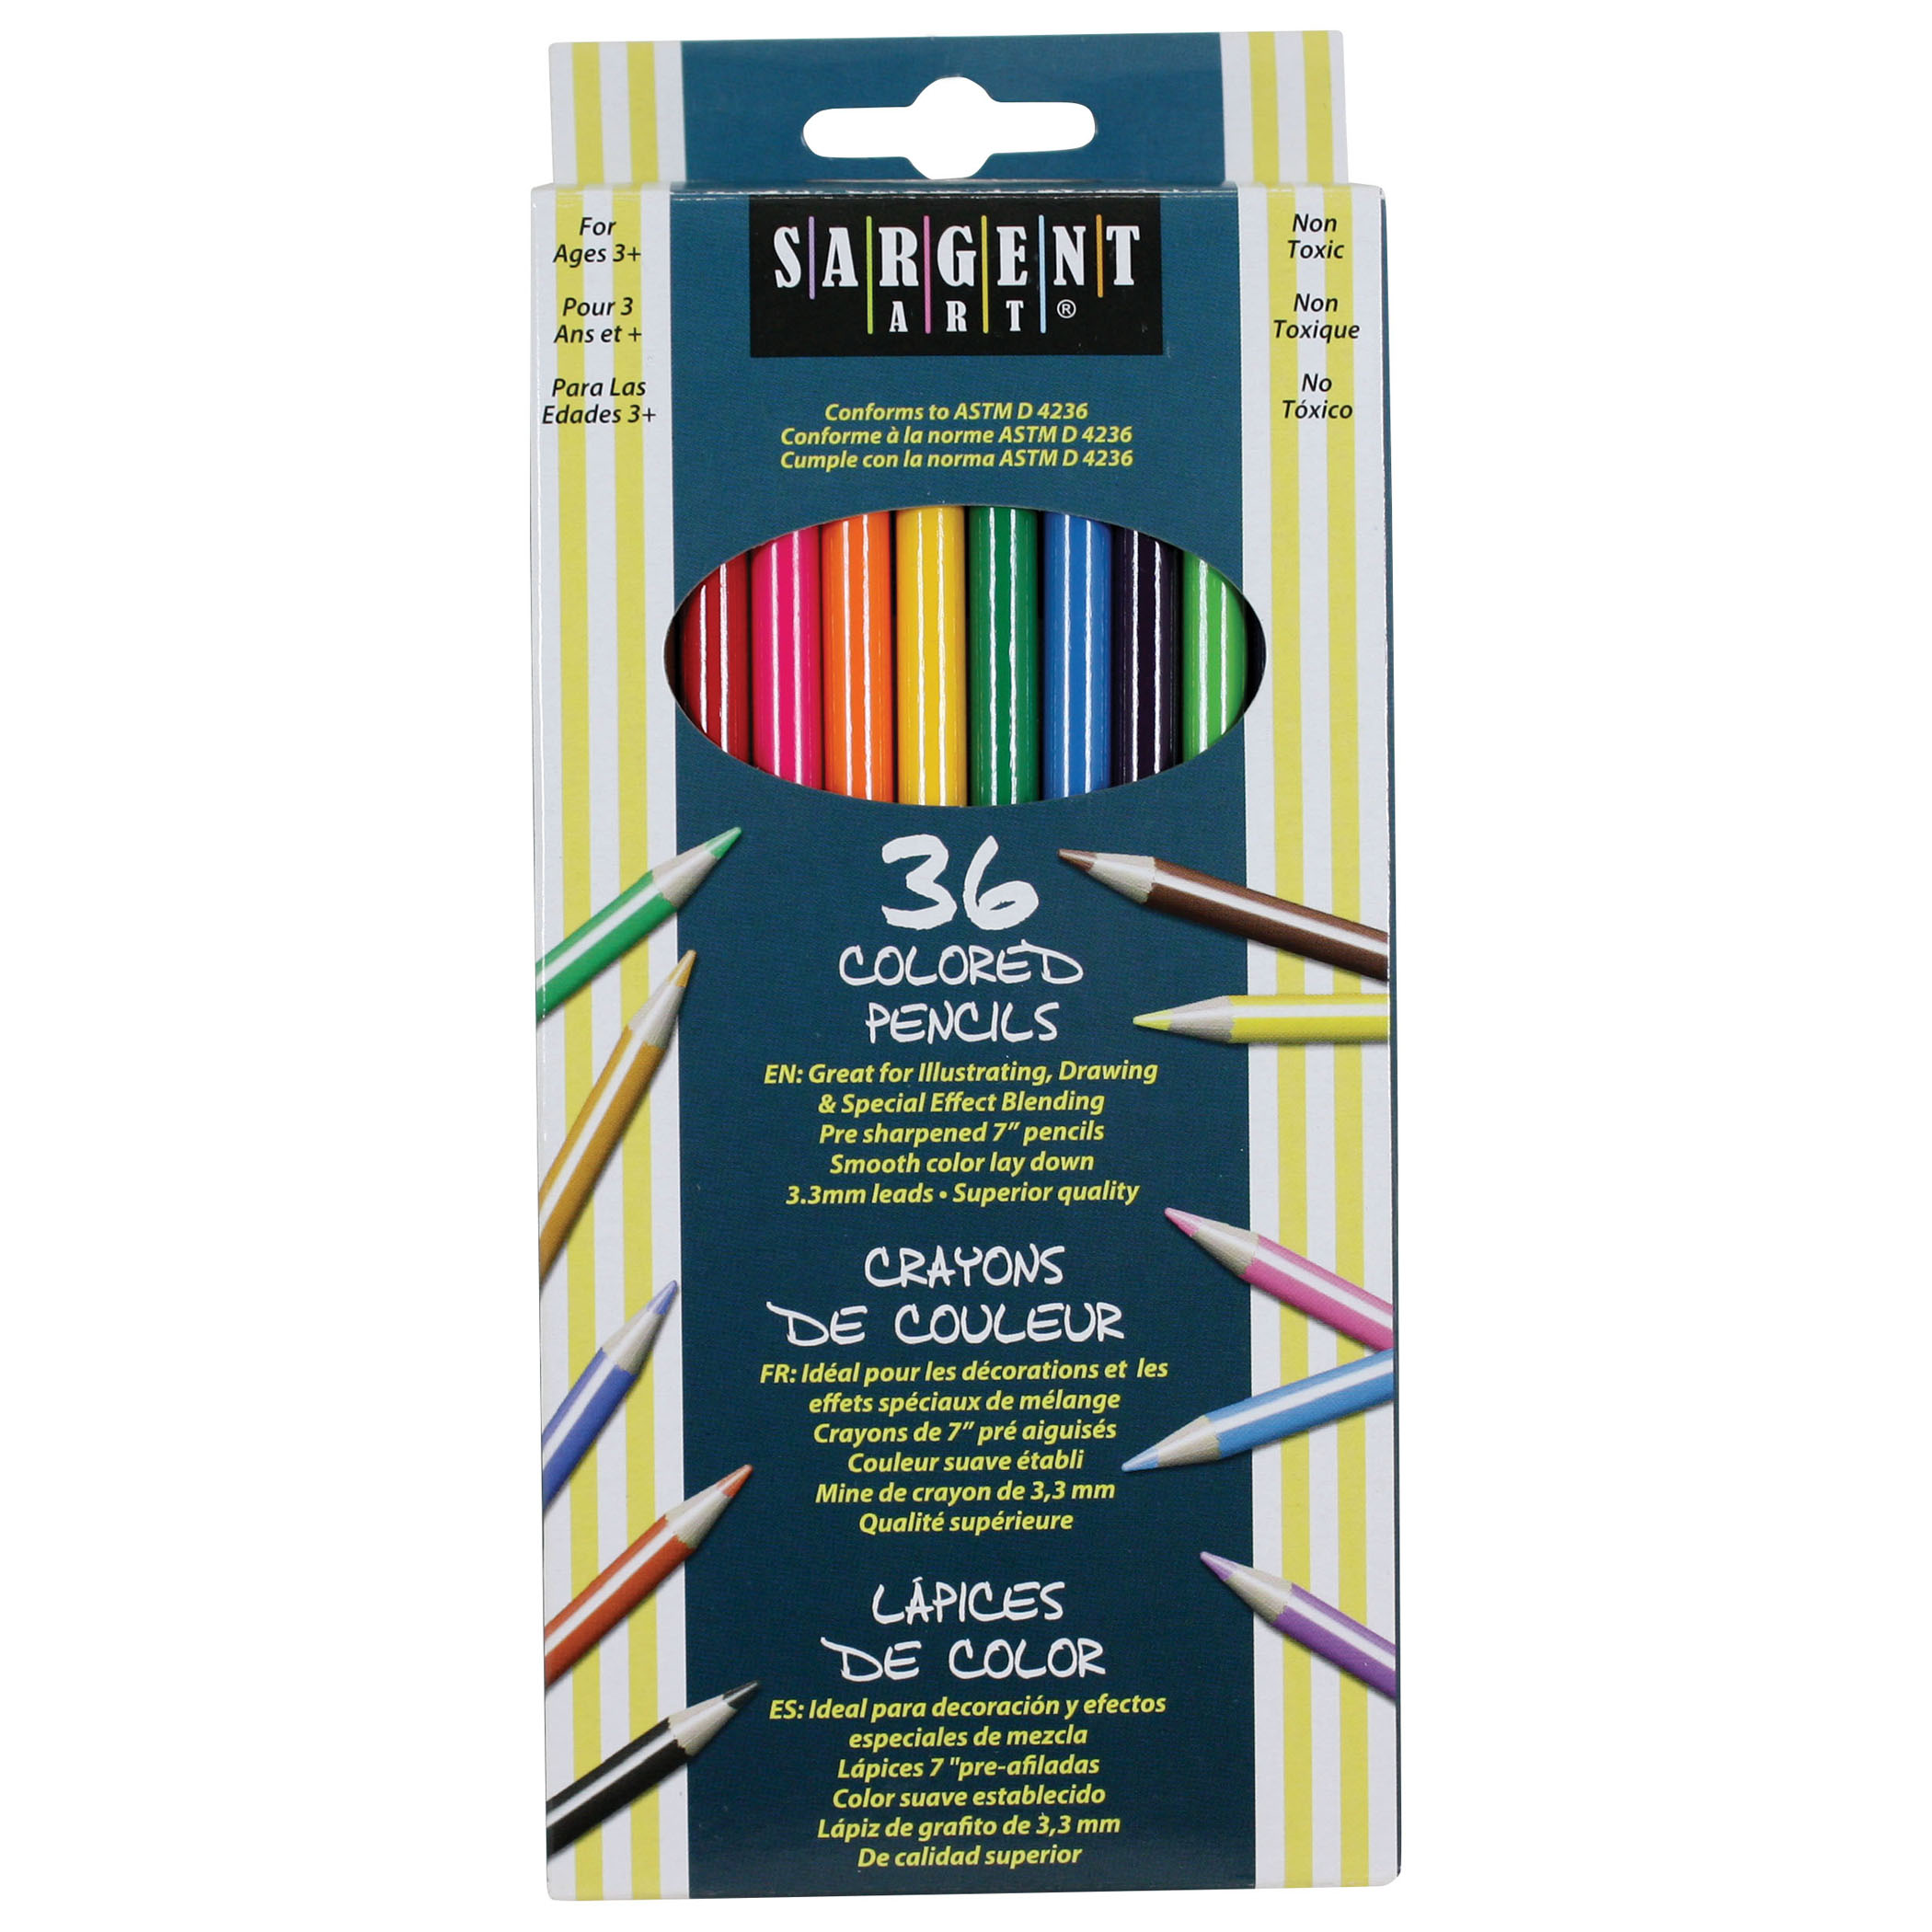 Sargent Art® Colored Pencils, 36 per pack, 6 packs